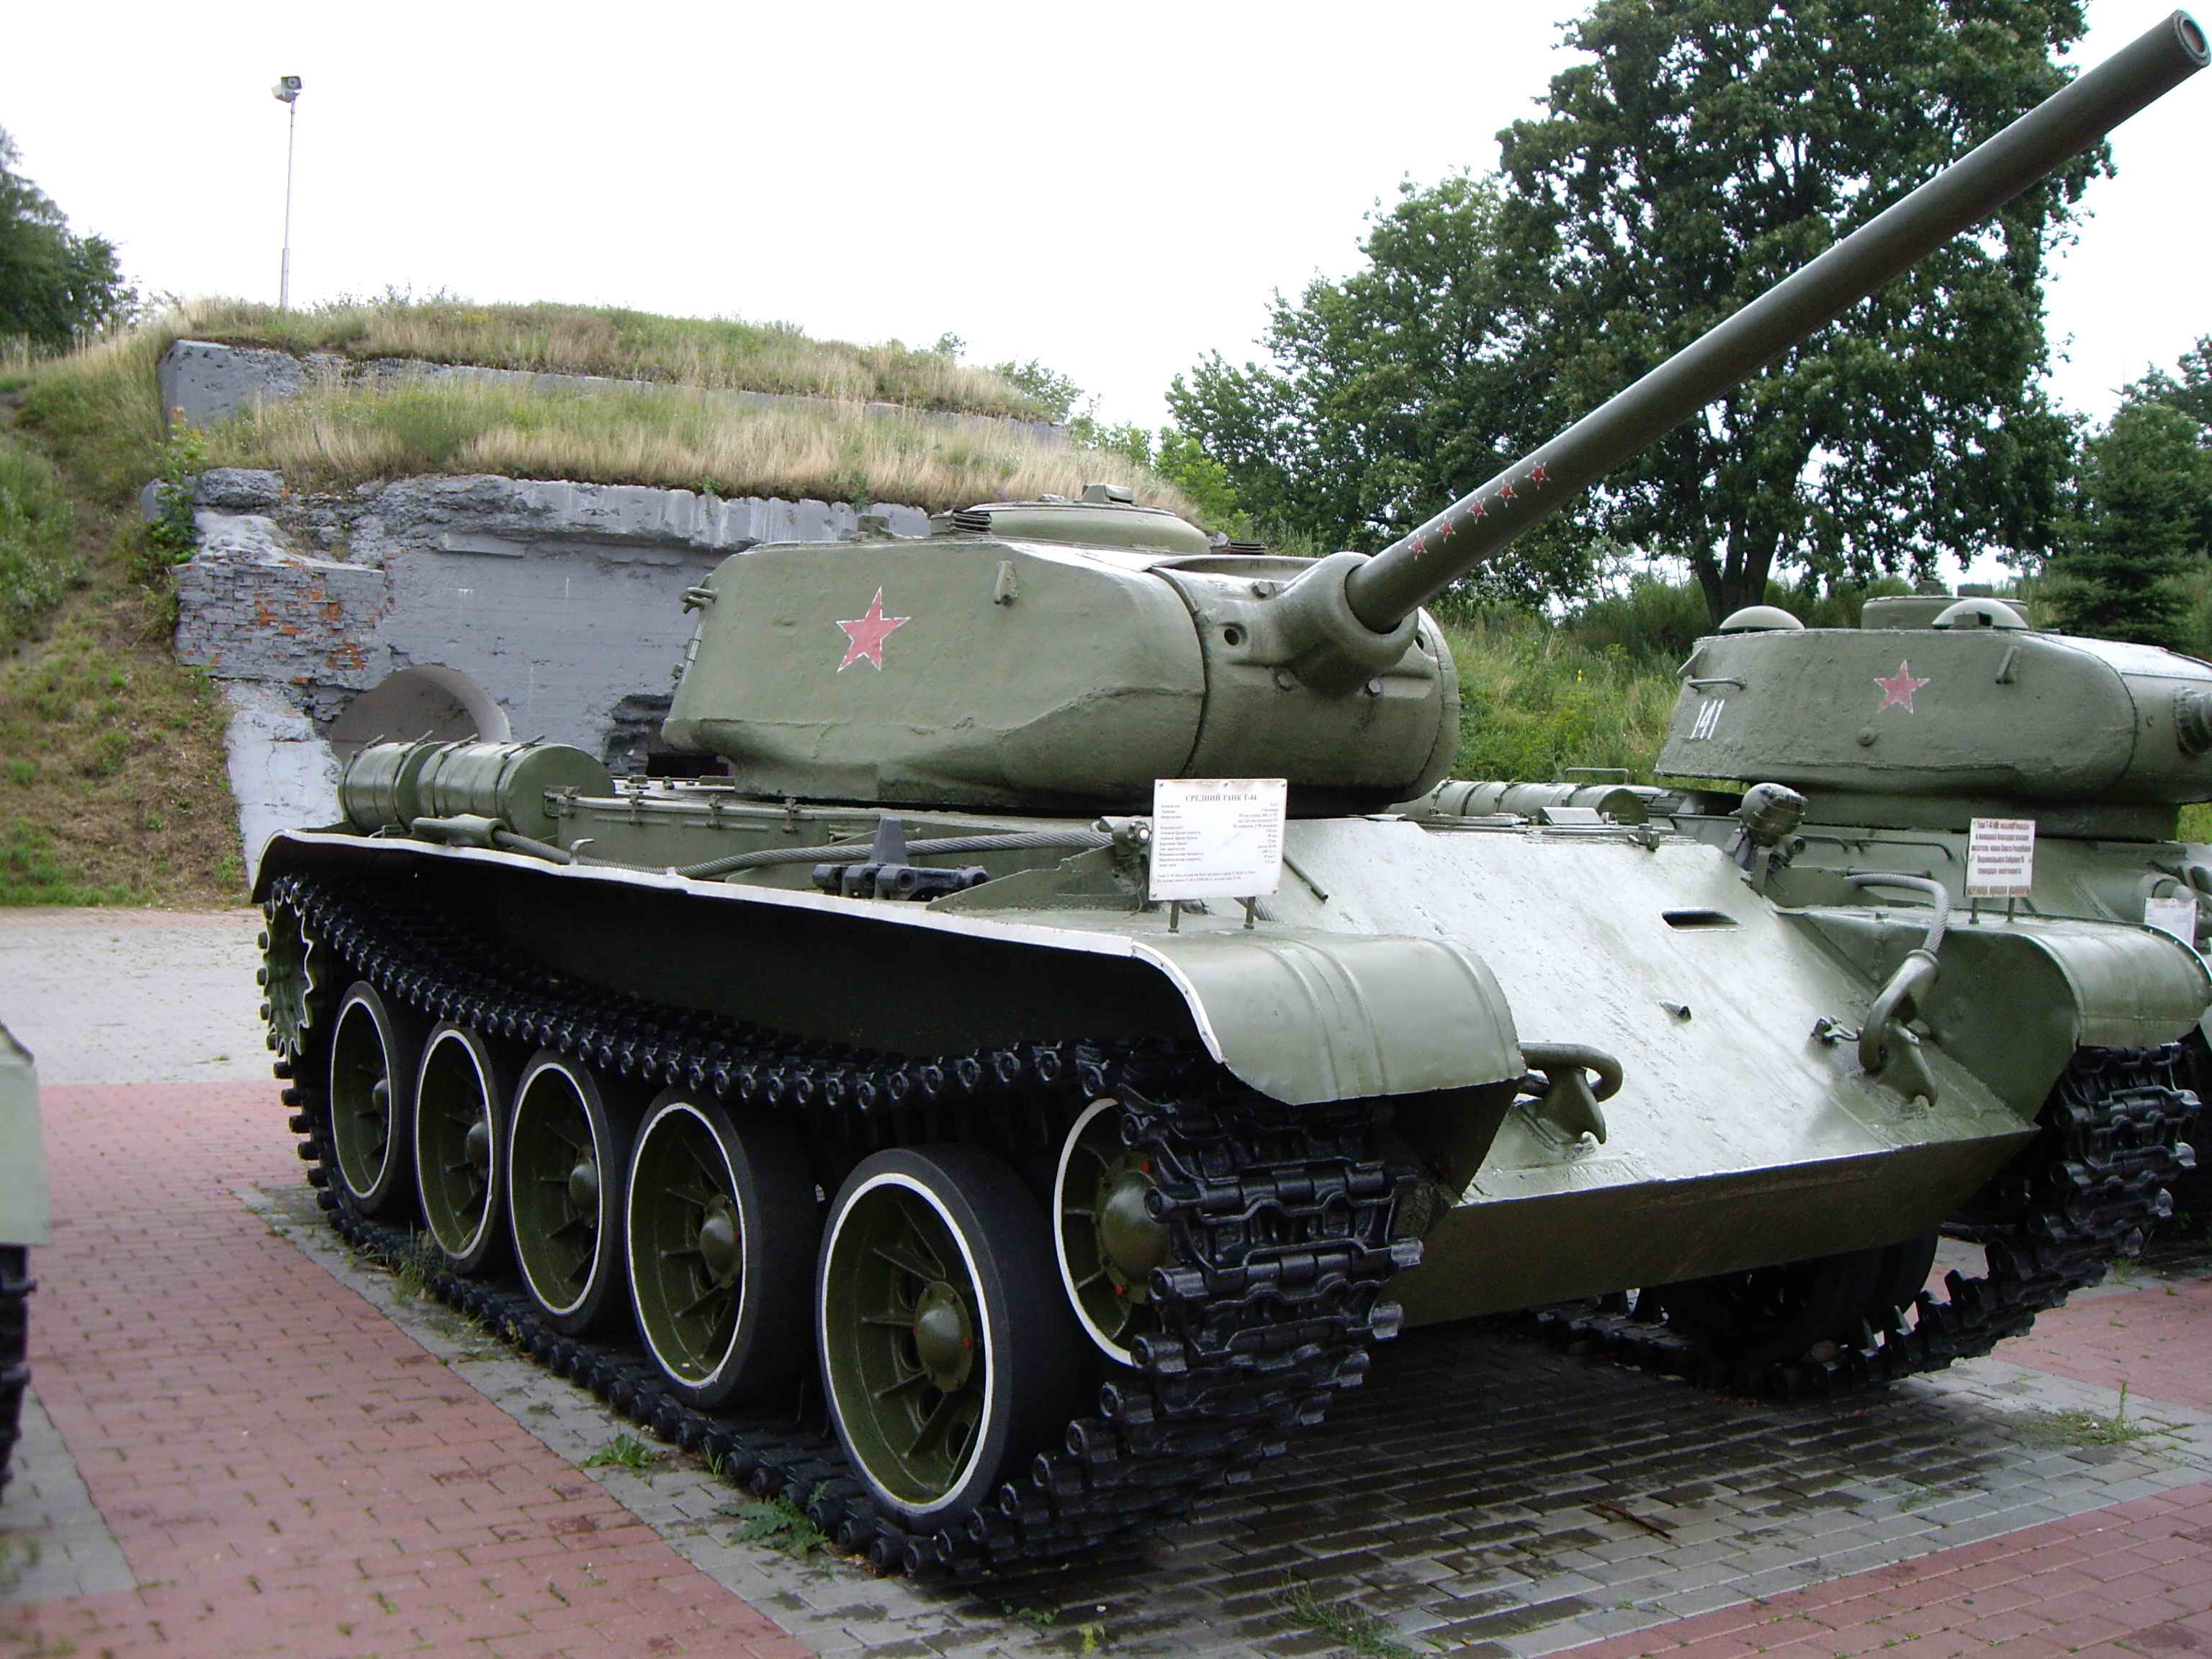 http://upload.wikimedia.org/wikipedia/commons/2/28/T-44.jpg